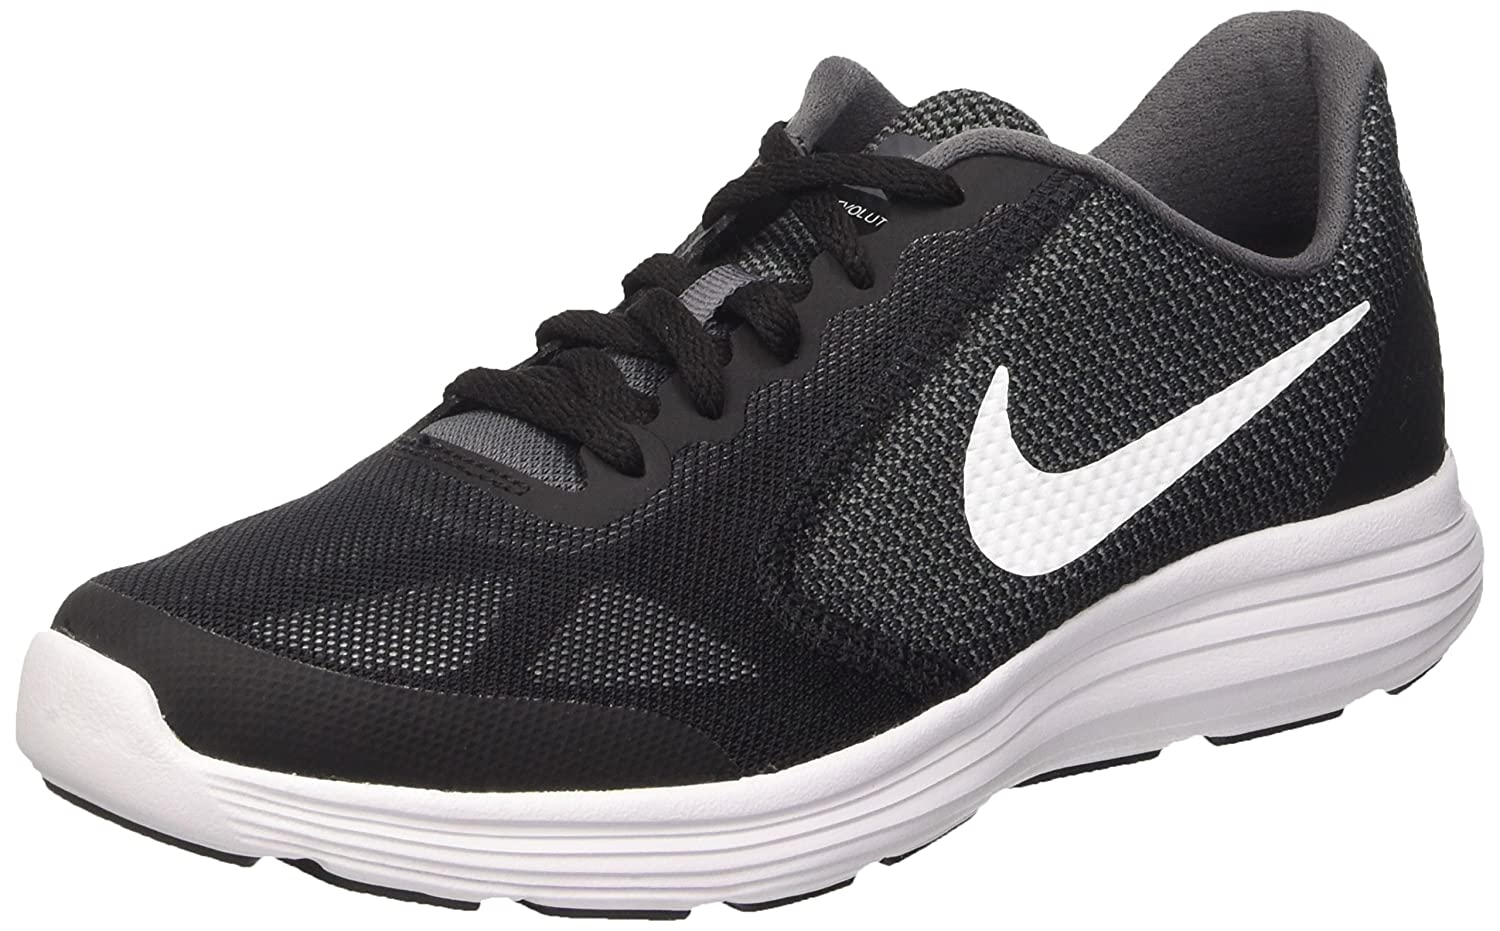 26d6543ce6f1 Nike Boys  Revolution 3 (GS) Running Shoes  Amazon.co.uk  Shoes   Bags